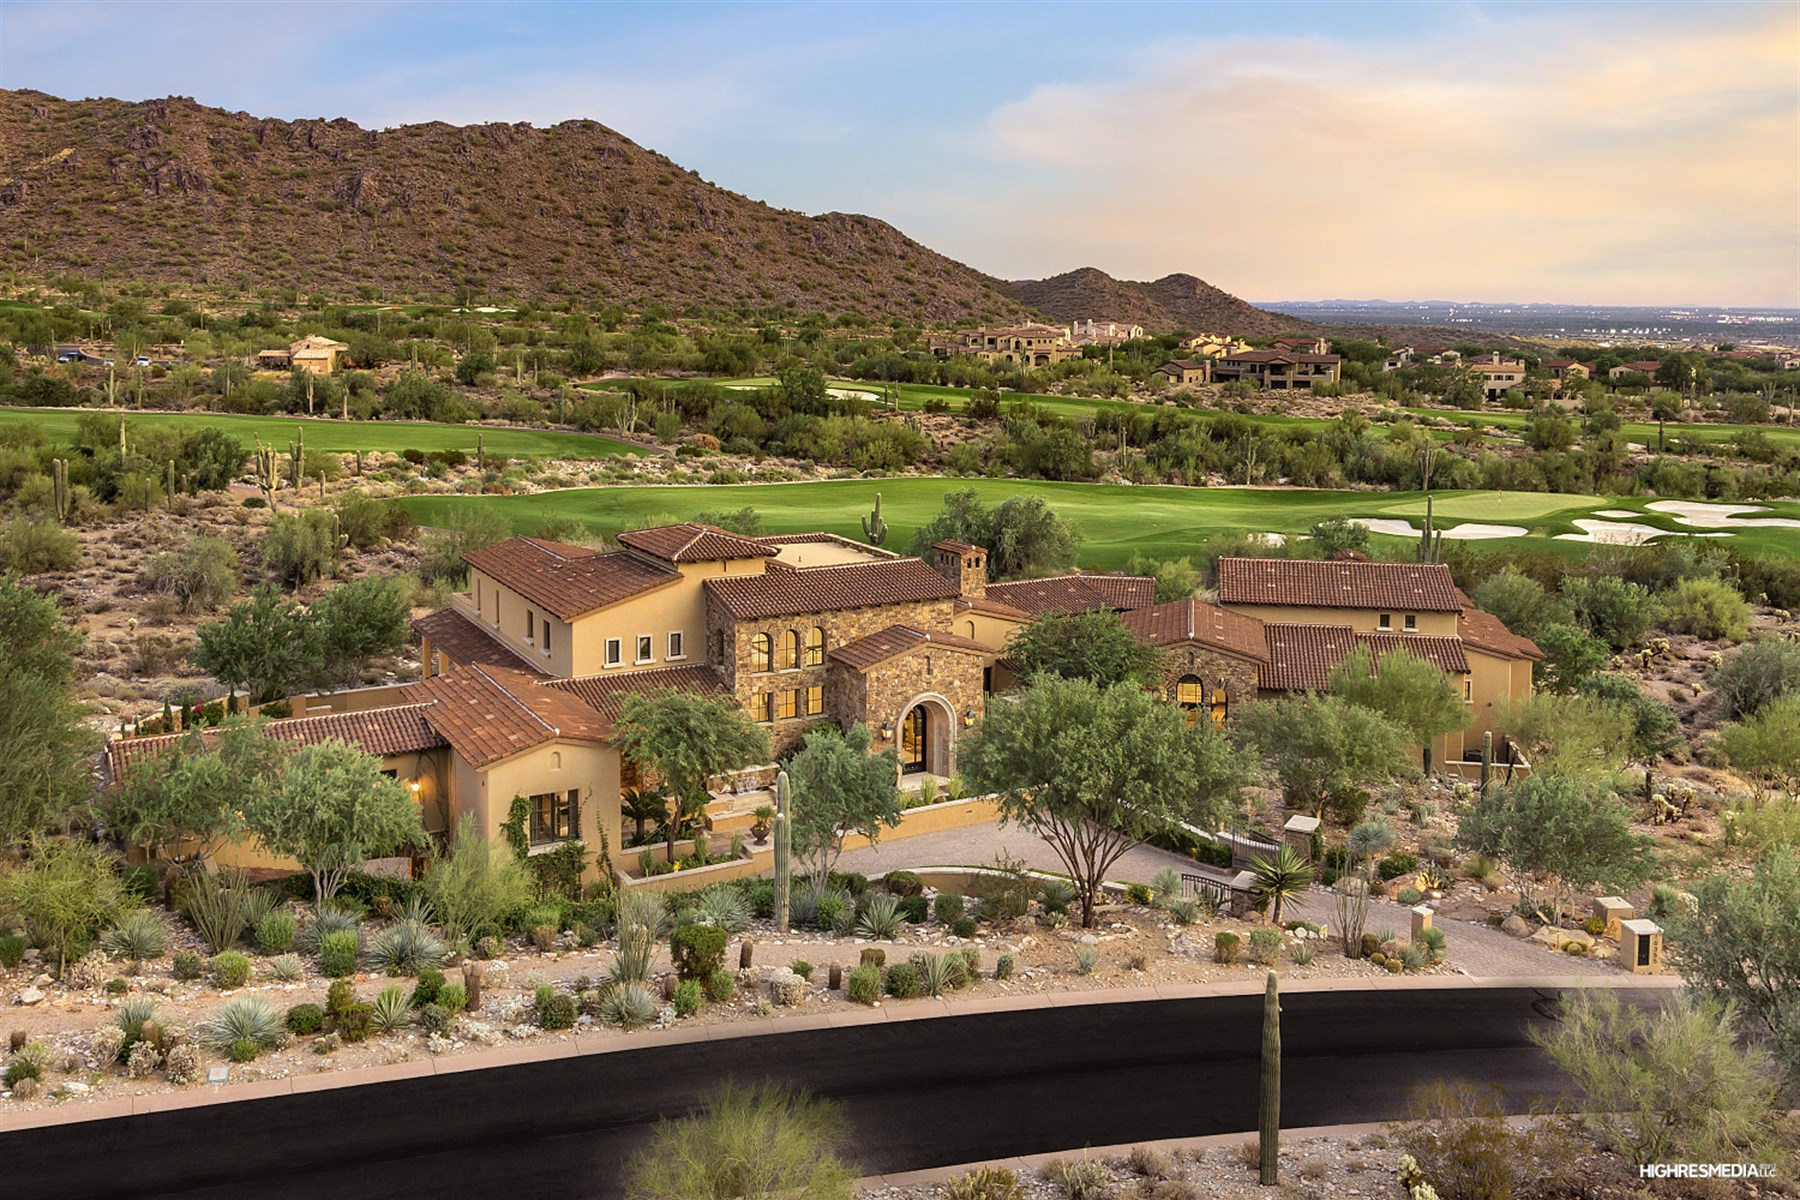 단독 가정 주택 용 매매 에 One of the finest residences Silverleaf has to offer 10355 E Robs Camp Rd Scottsdale, 아리조나, 85255 미국